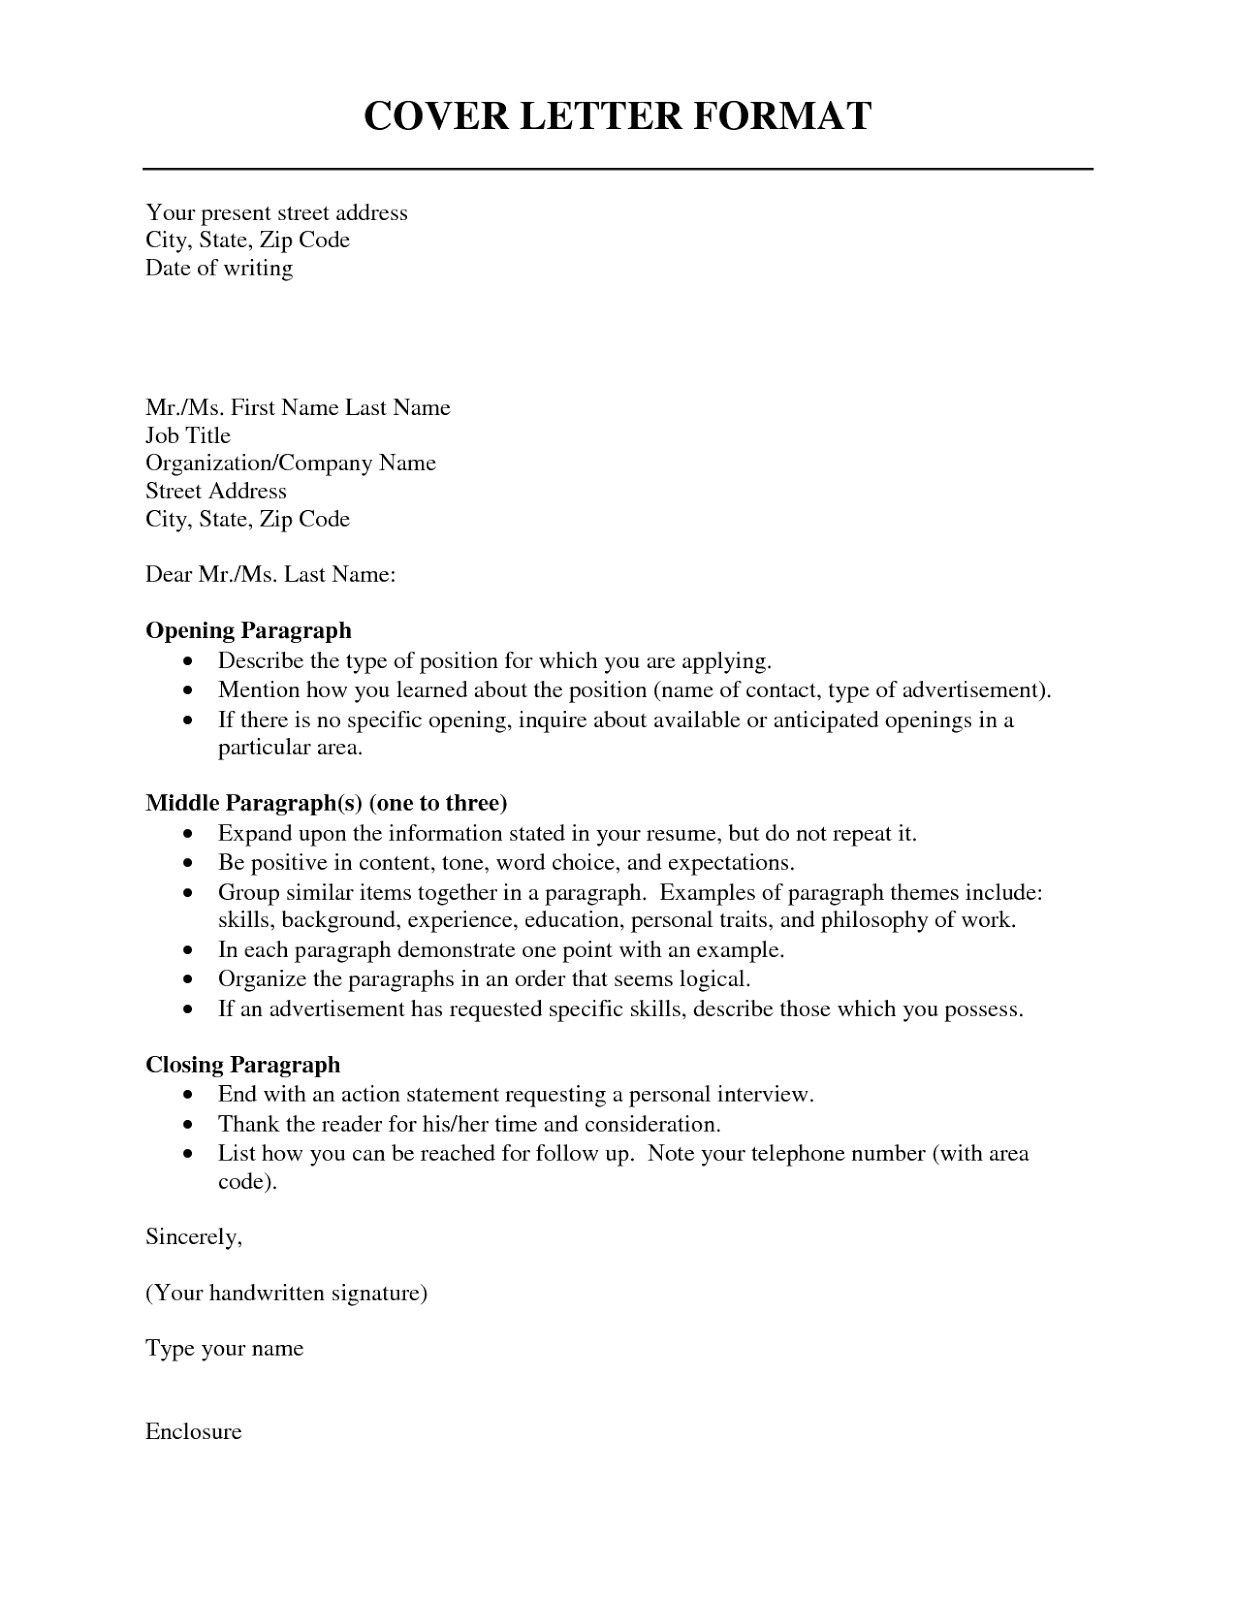 cover letter format 2